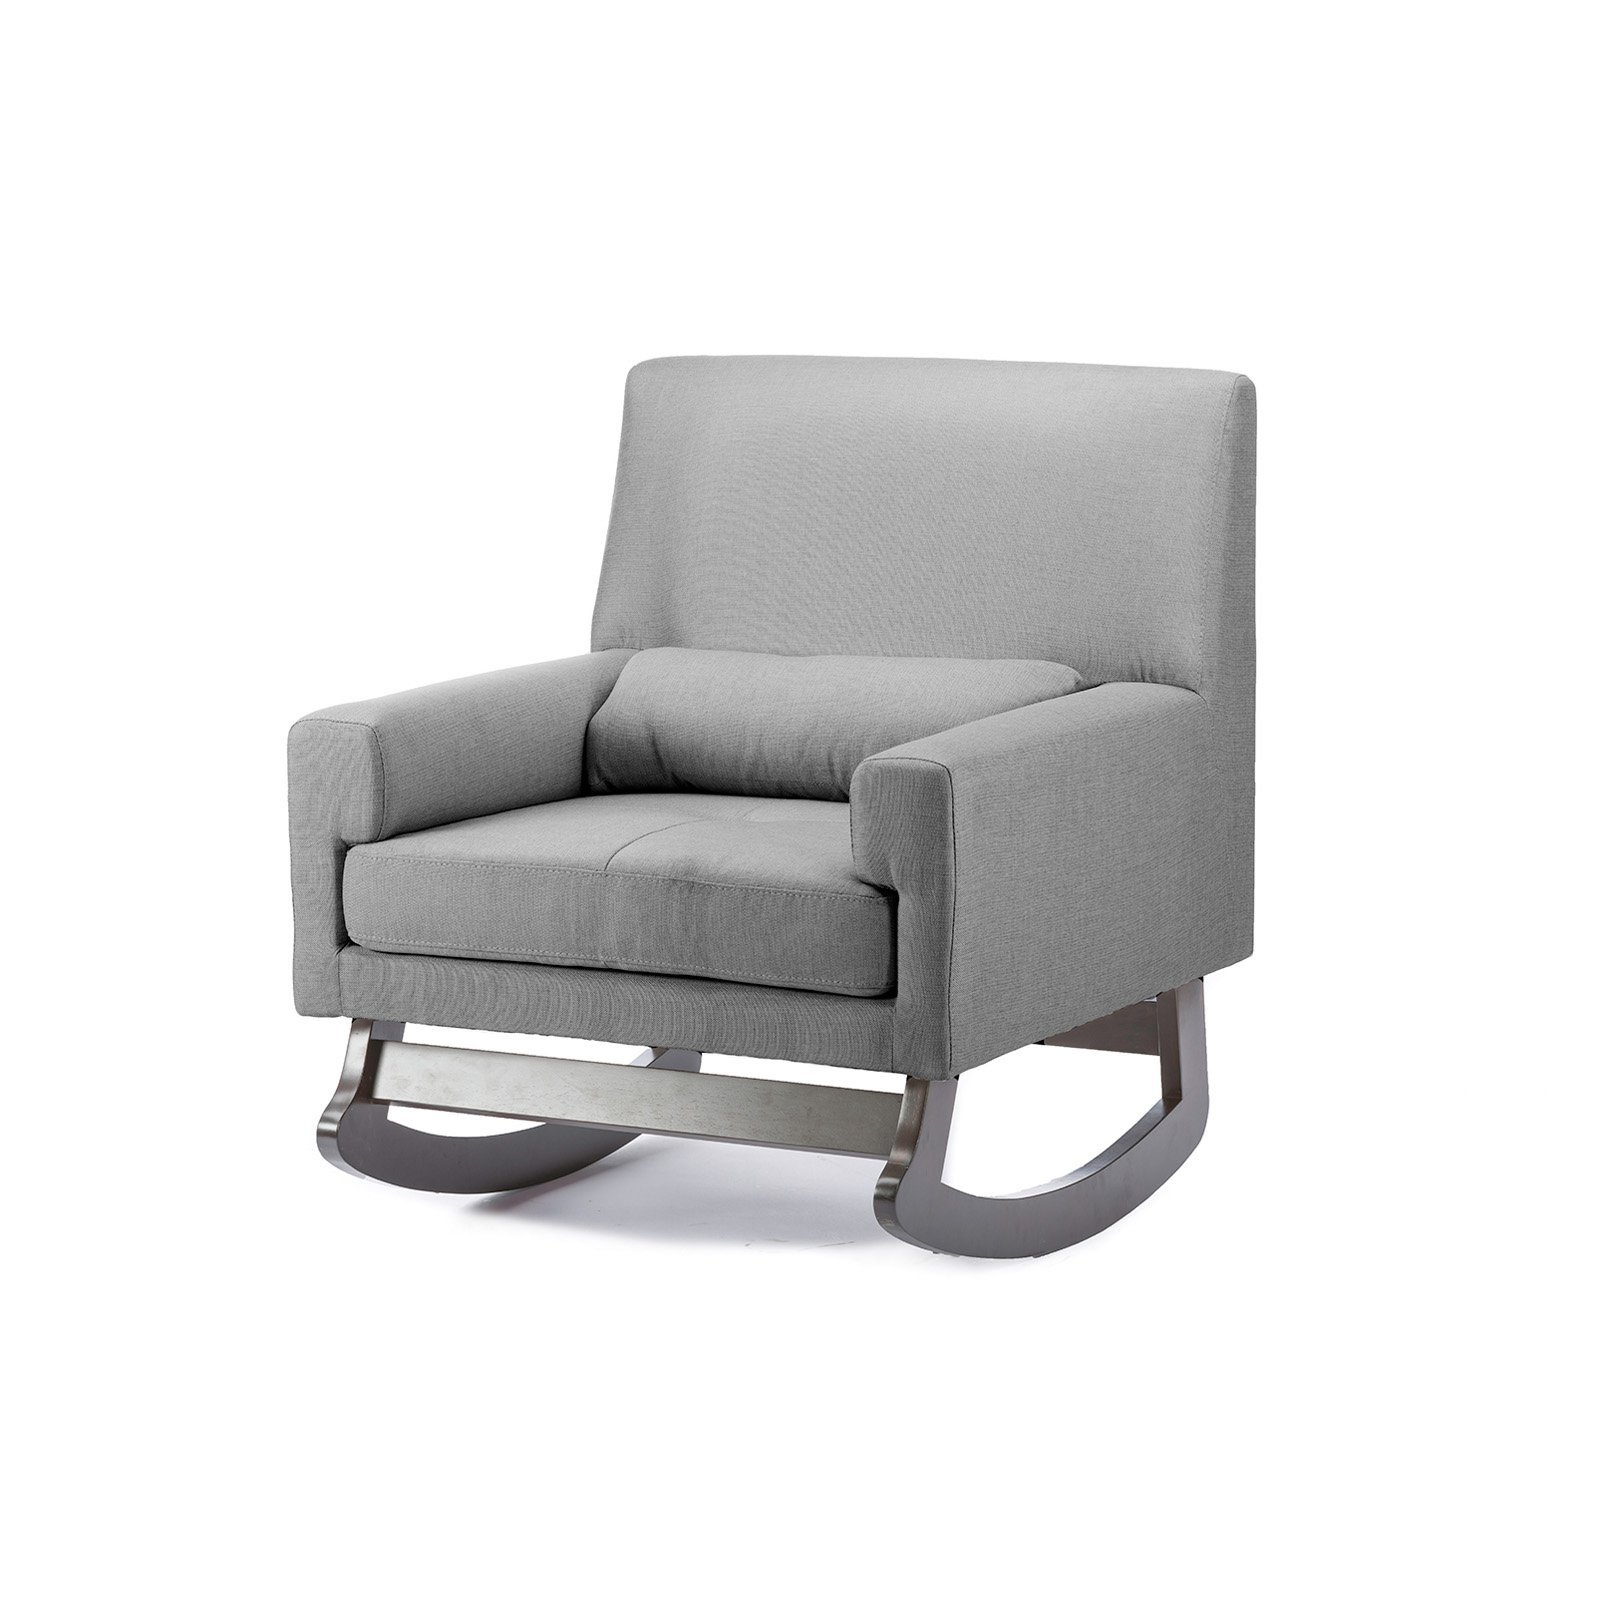 Imperium Gray Linen Contemporary Rocking Chair with Pillow by Baxton Studio